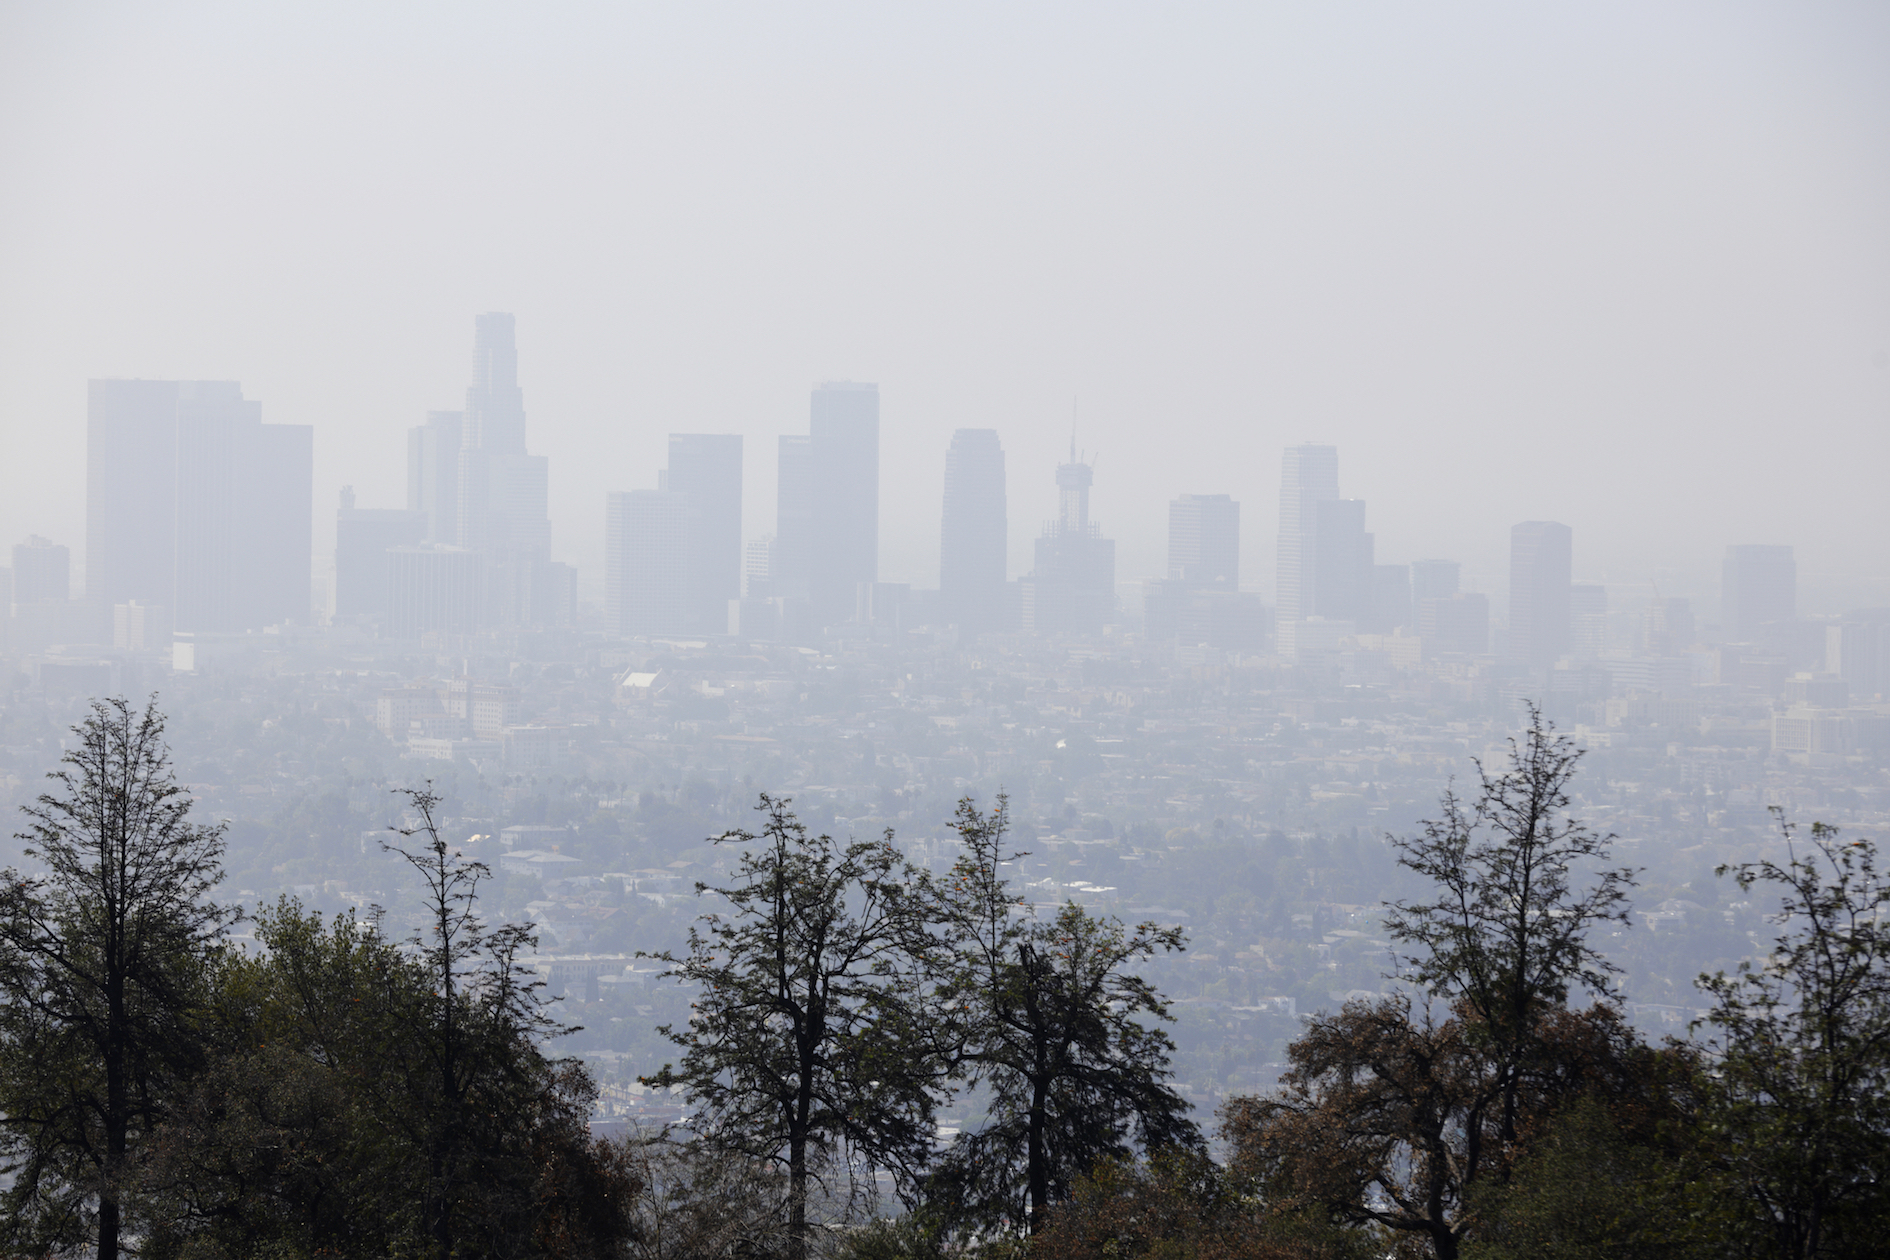 According to the American Lung Association, at least 41 percent of residents in the United States are exposed to harmful smog and air pollution.